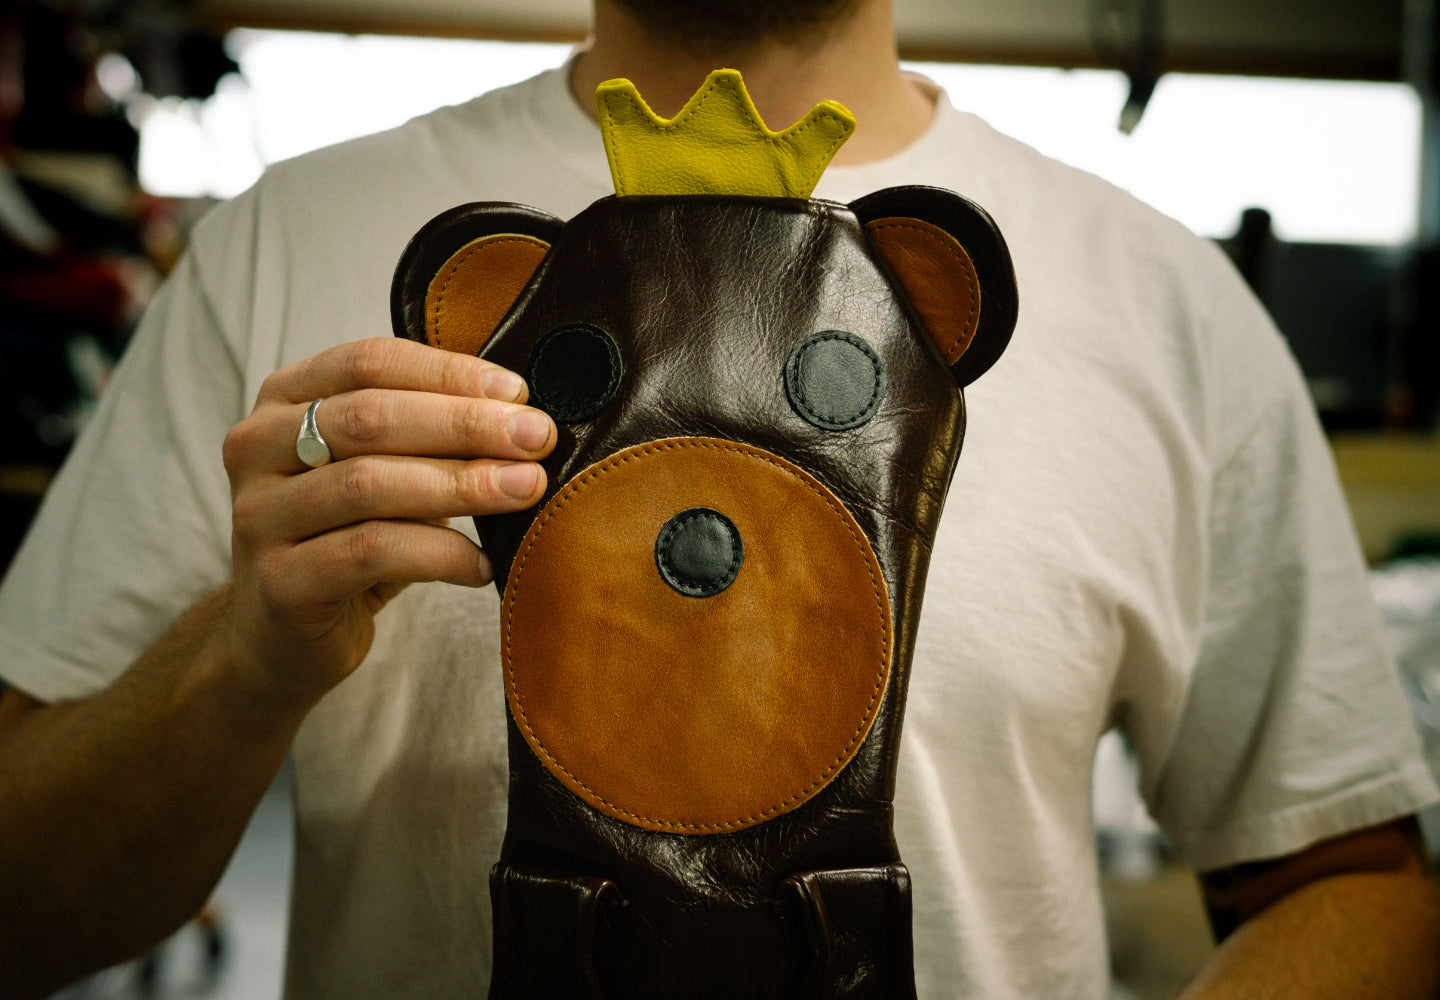 Photo of a fully-assembled custom club head cover being held up by a craftsperson